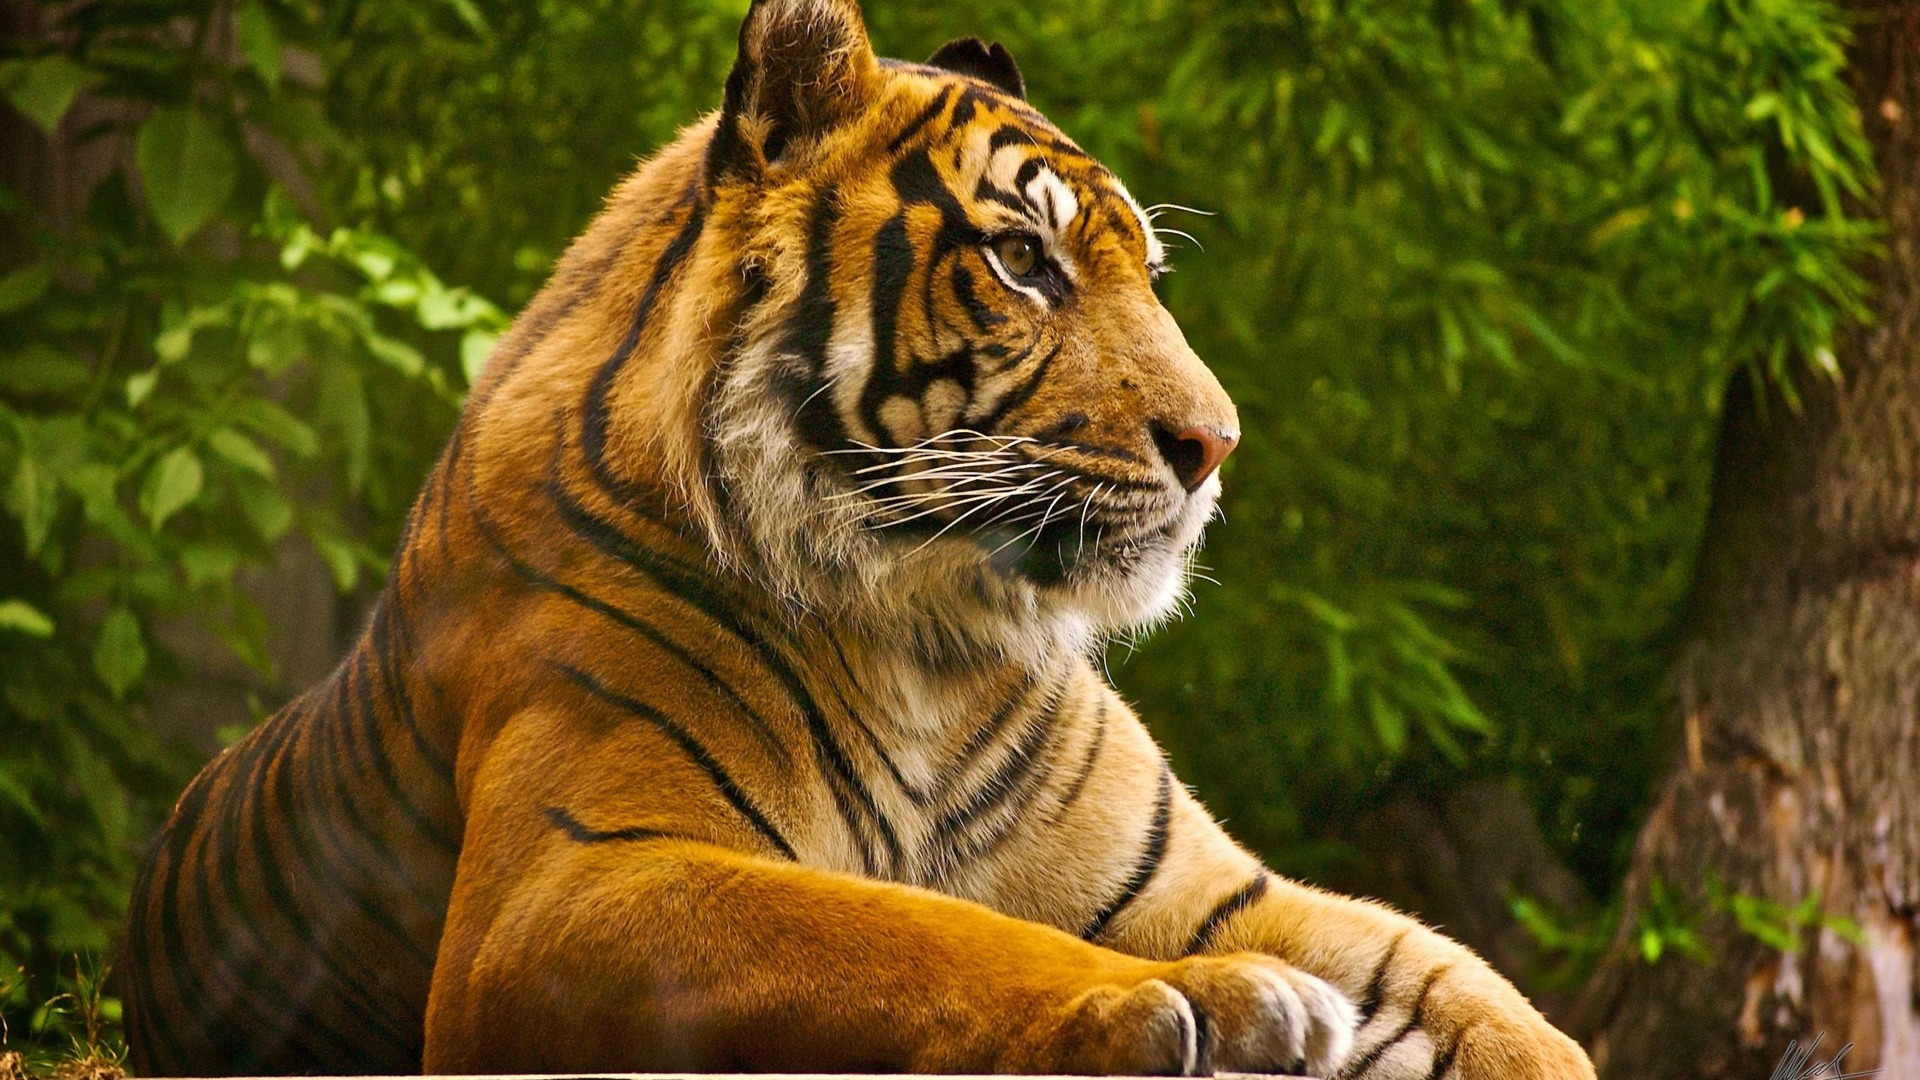 tiger wild animal desktop wallpaper Wallpaper HD Desktop Background 1920x1080